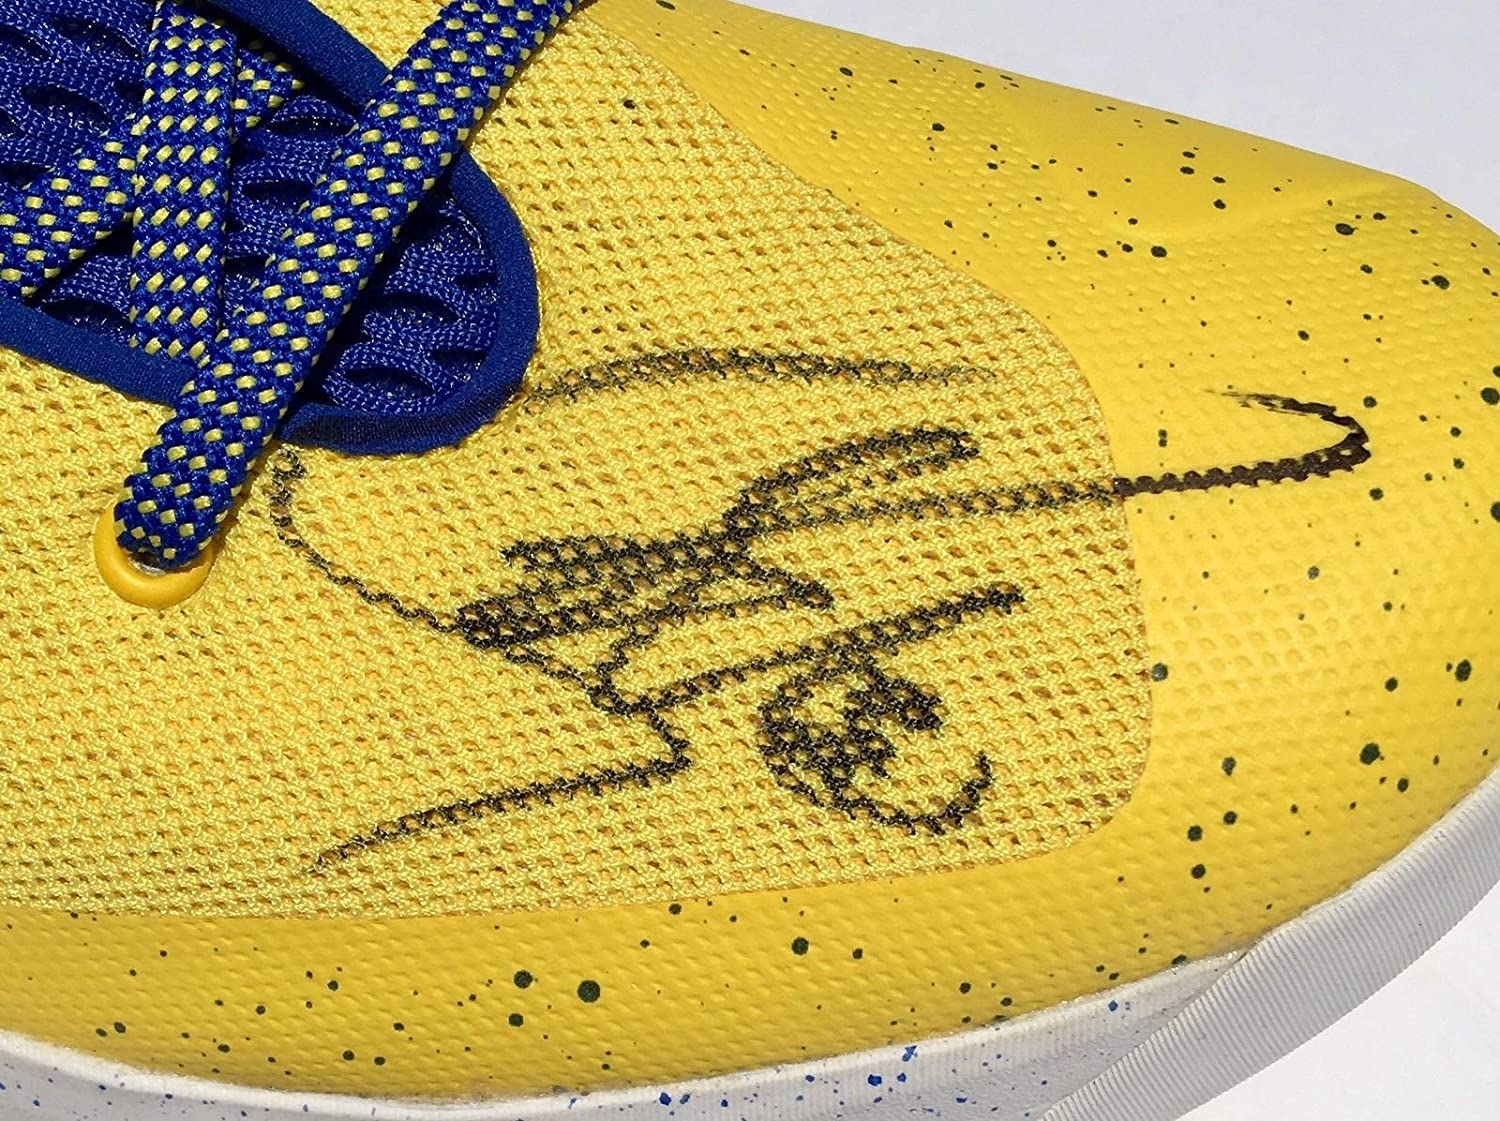 60cf1d84b7fd5 Stephen Curry 0 Signed Under Armour 3Zer0 Basketball Shoes With- JSA ...